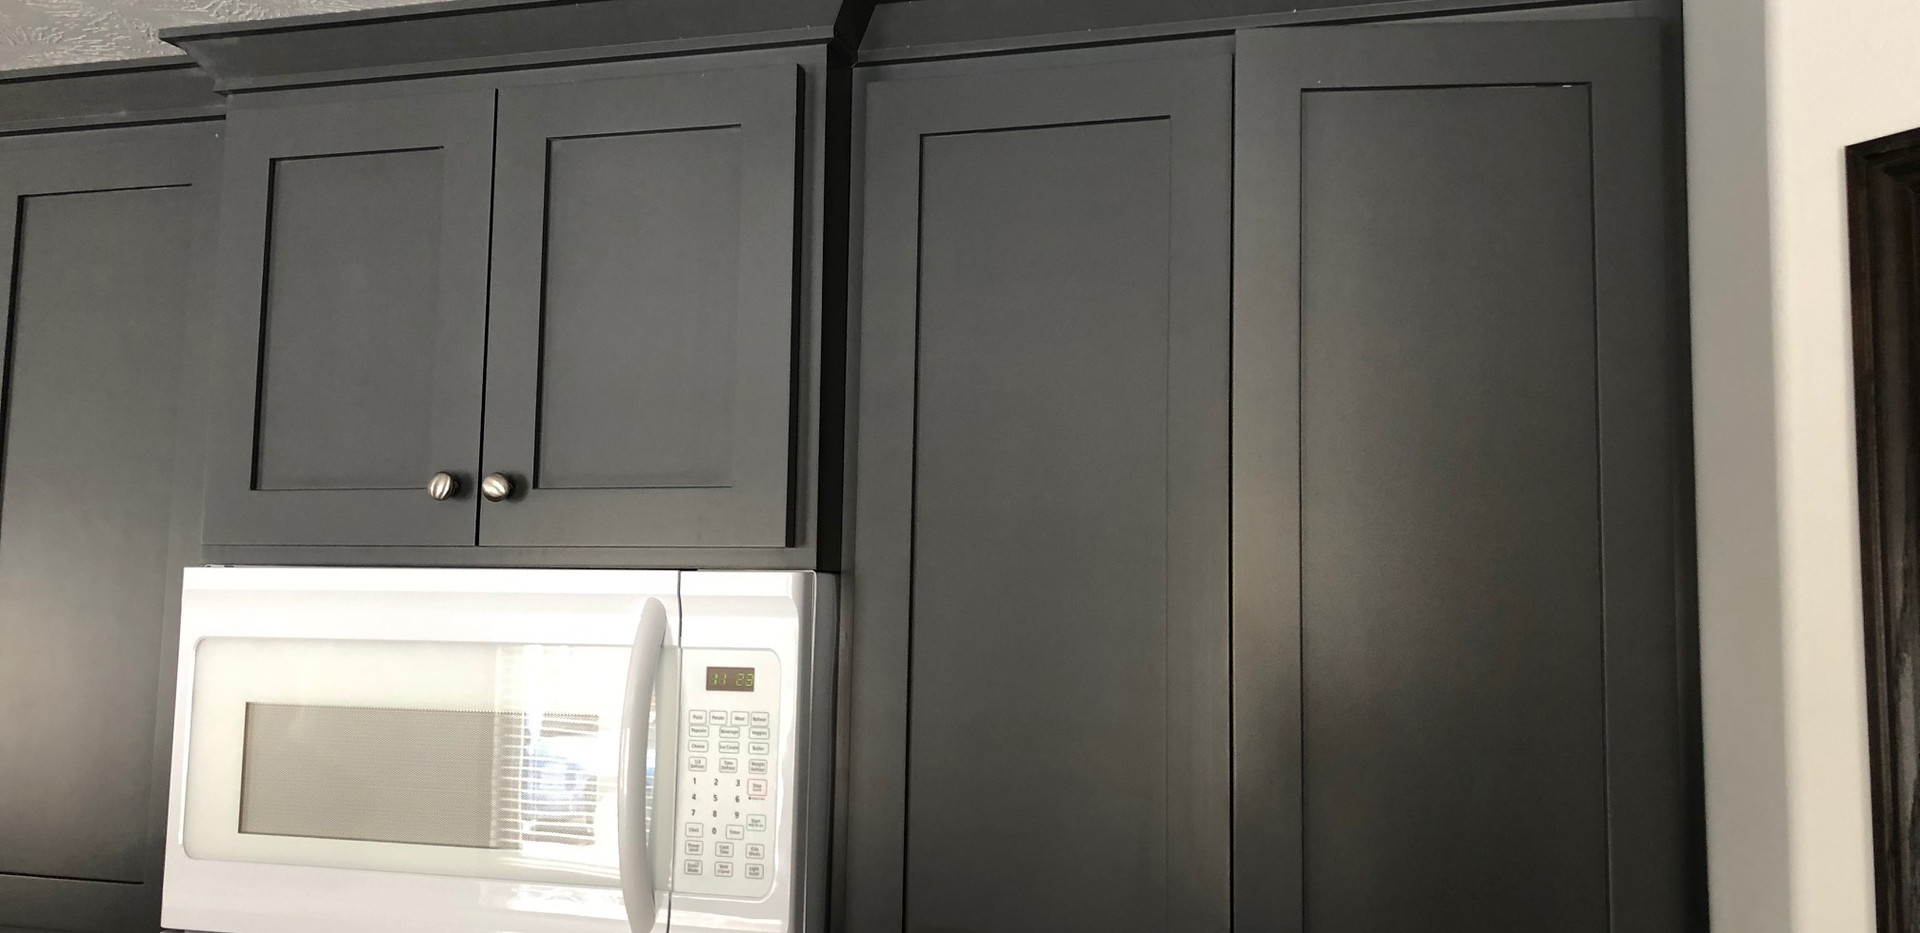 White Micowave & 40 inch cabinets.jpg